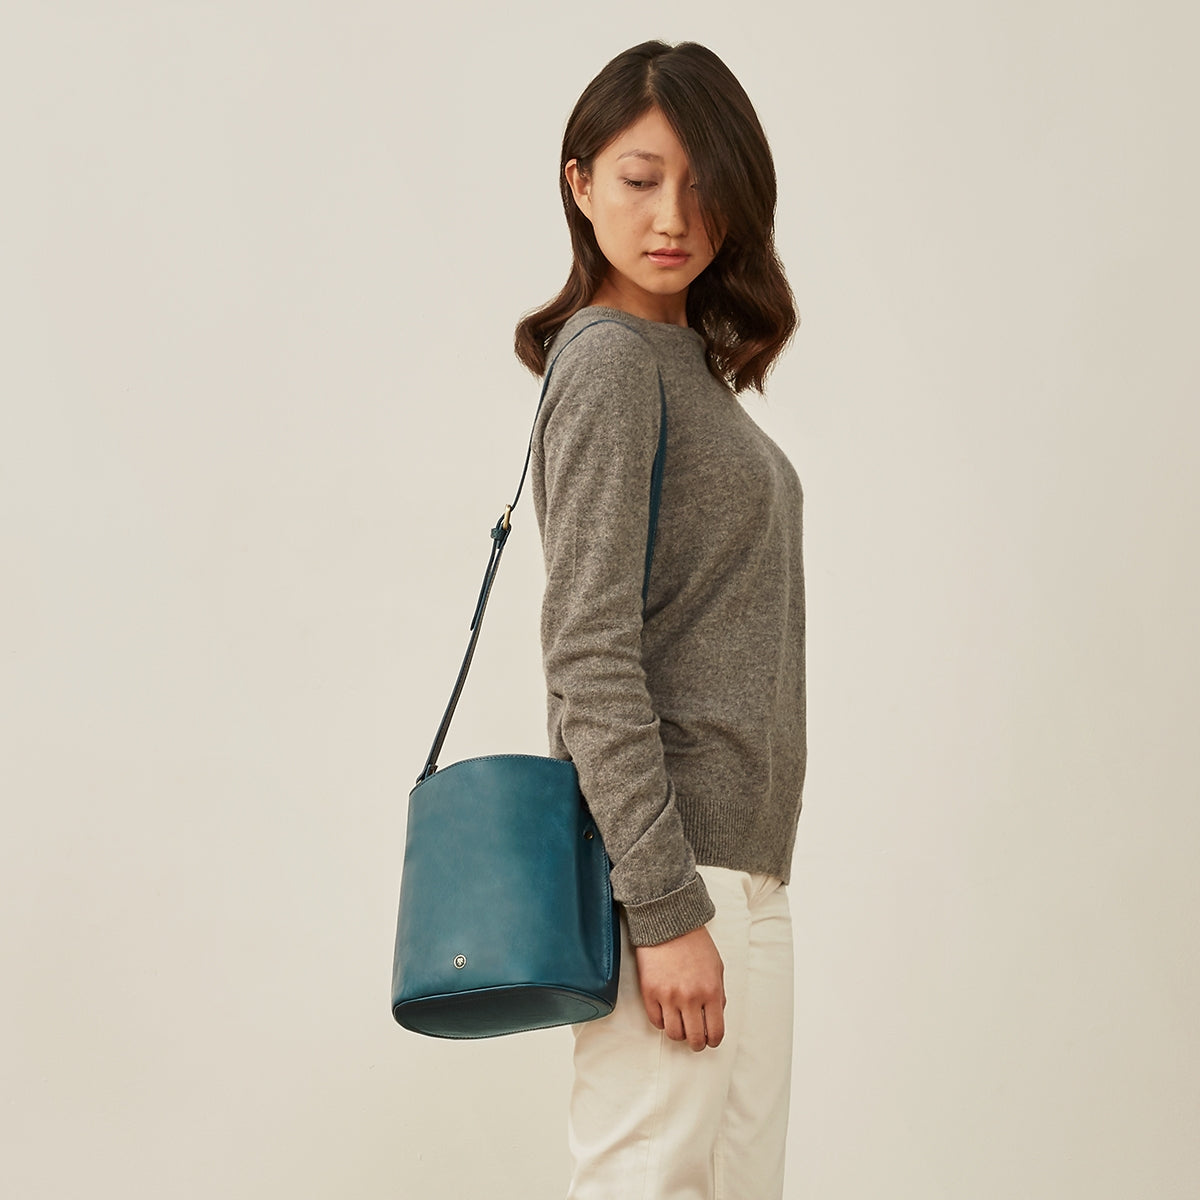 Image 8 of the 'Palermo' Petrol Leather Ladies Bucket Bag Handbag